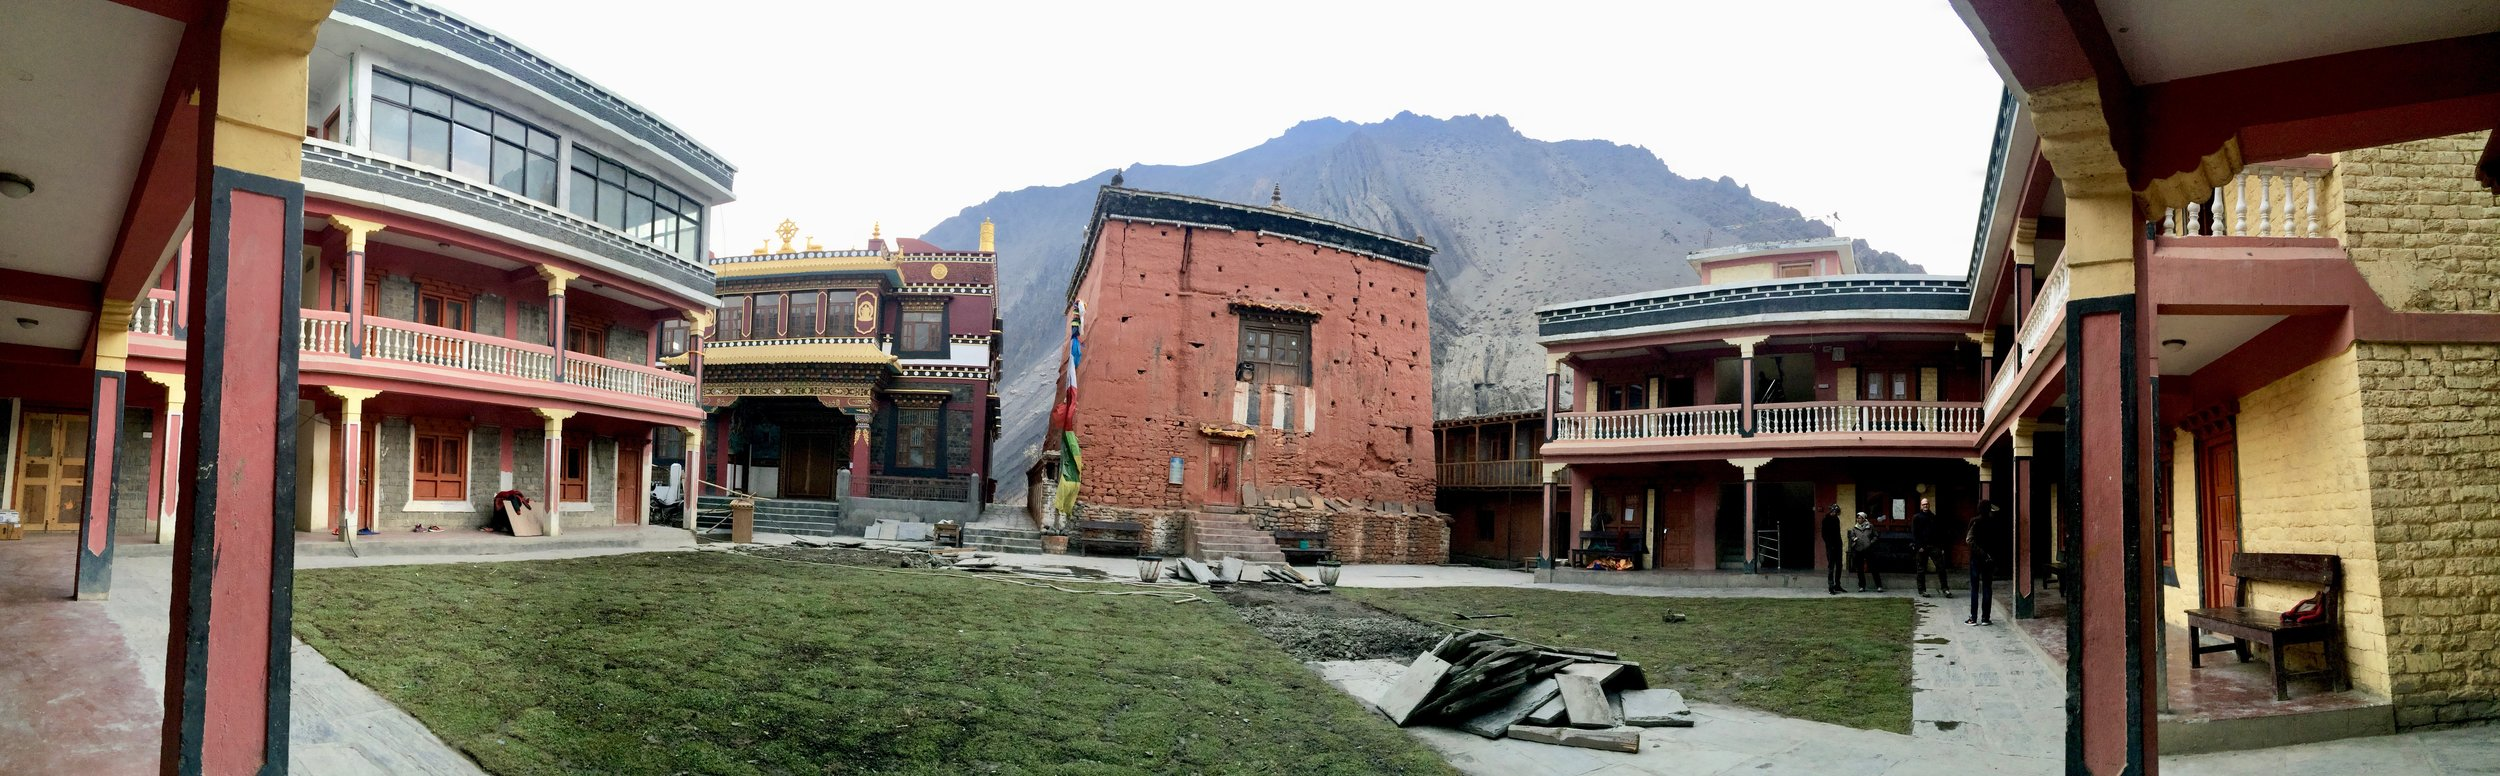 The Kag Chode Monastery complex includes the 500-year-old monastery building (at center) and newer buildings that serve as a monastic school for orphaned and impoverished boys. Monks in crimson red habit walk slowly and wisely, while rambunctious boys in crimson red track suits with saffron stripes play.